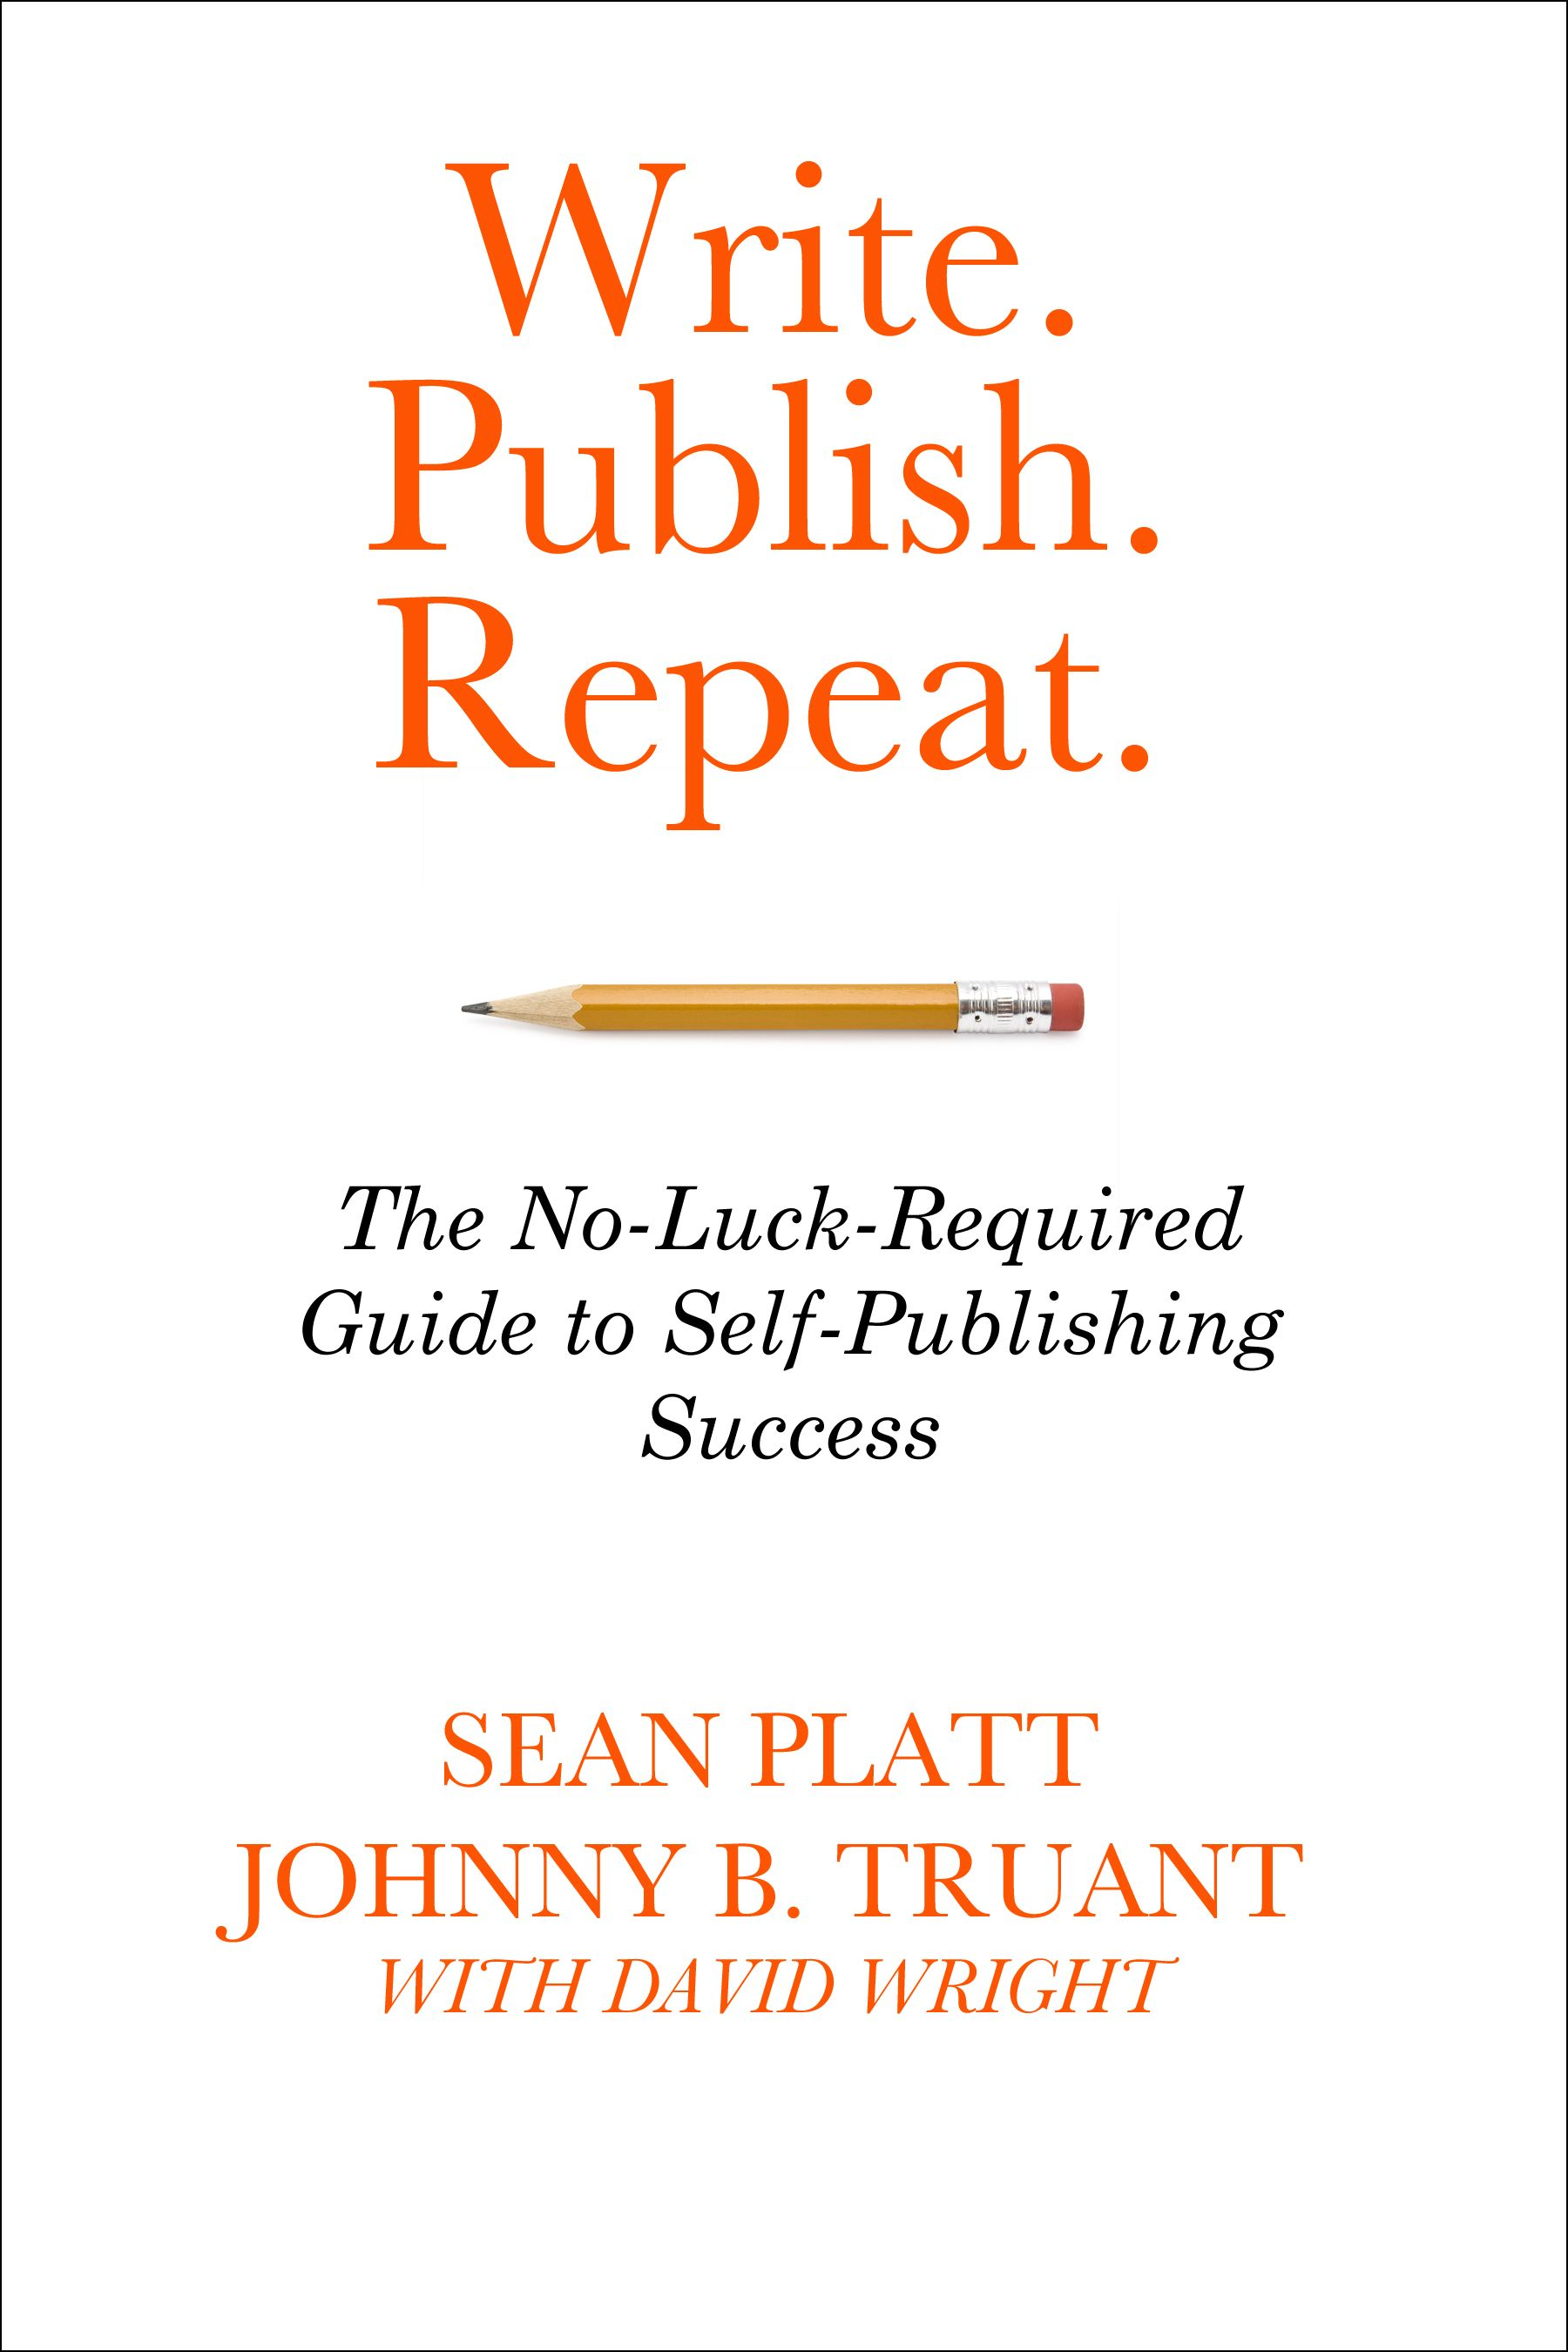 Writing Fast, Funnels And Calls To Action. My Lessons Learned From Write, Publish, Repeat.